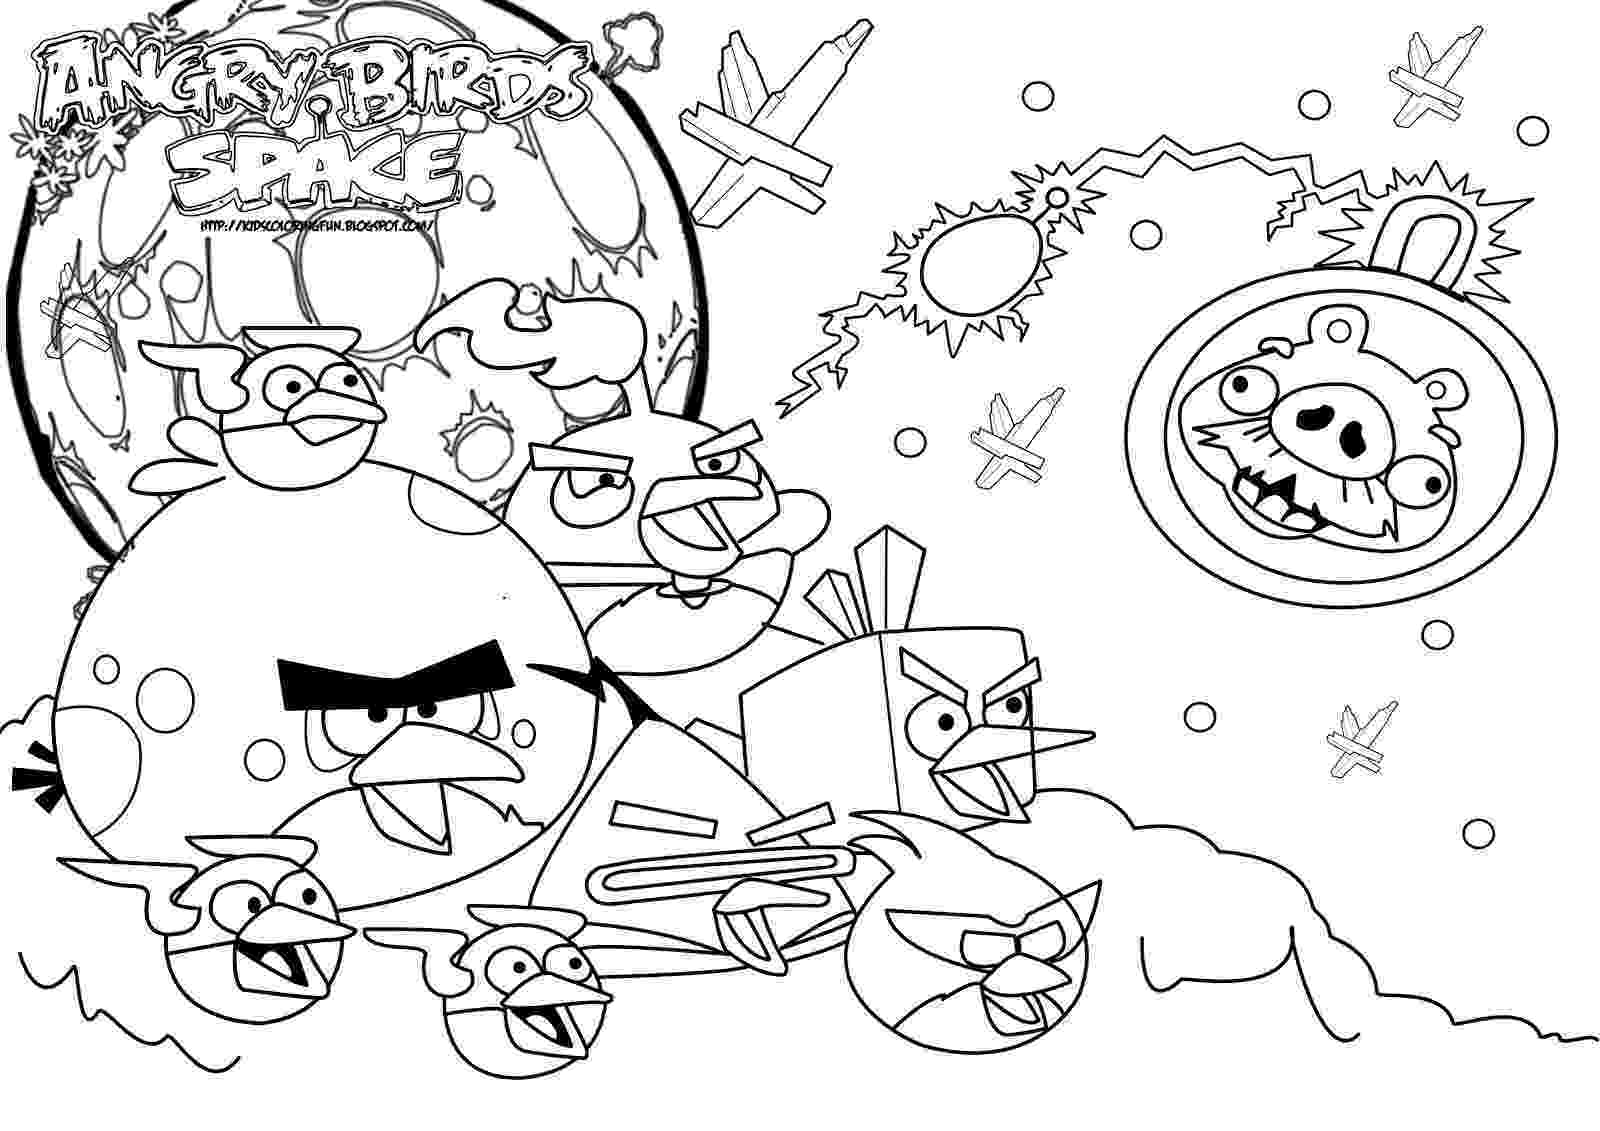 colouring pages angry birds go angry birds coloring page for kids terrence coloring pages go birds colouring angry